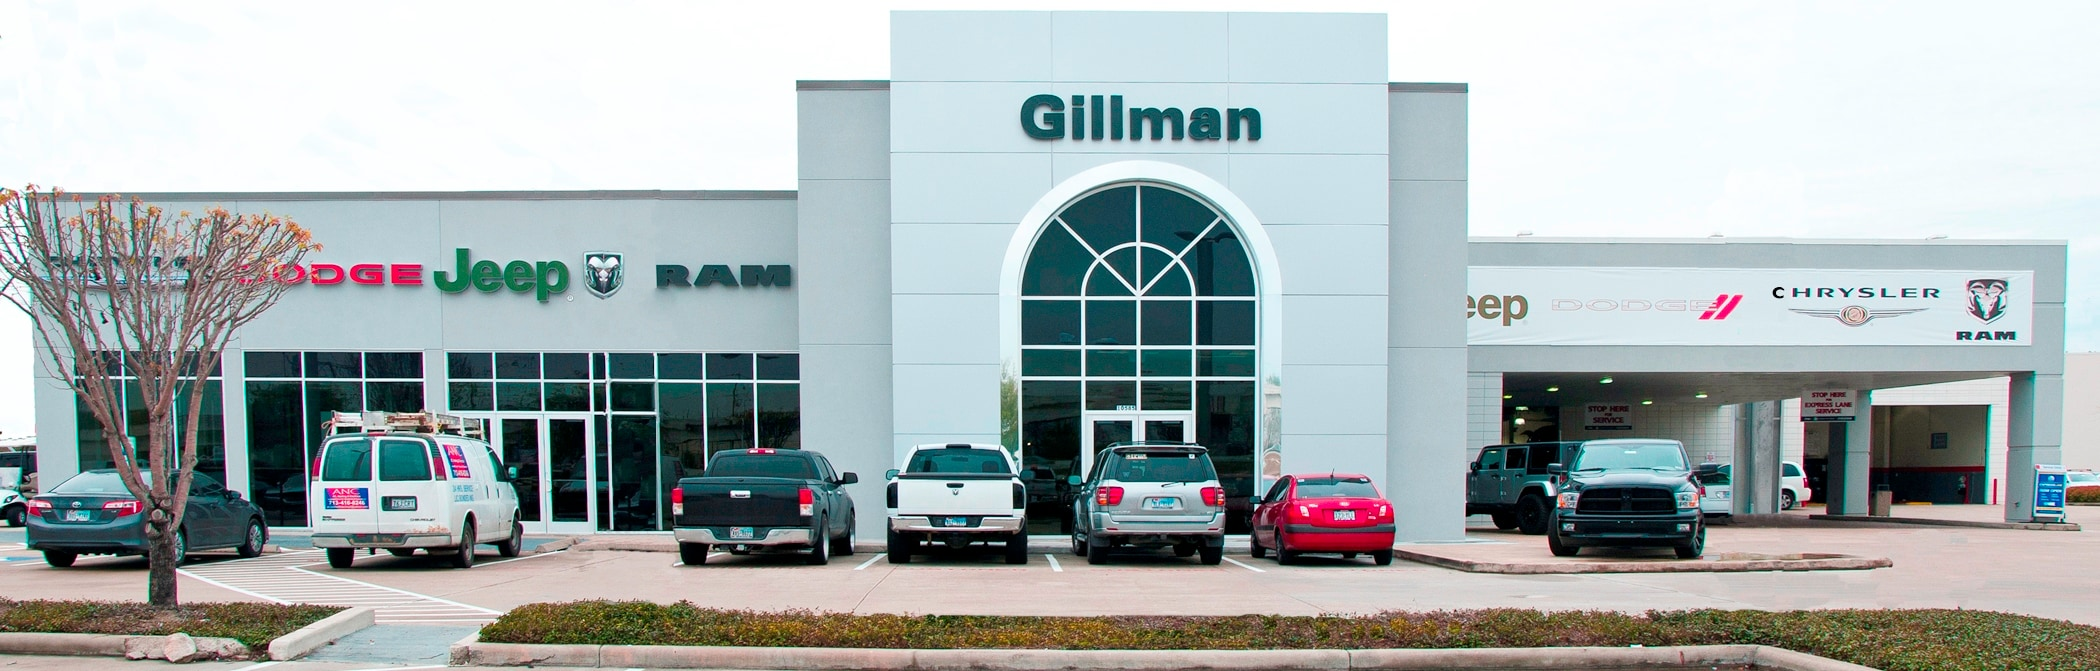 gillman chrysler jeep dodge ram new used car dealer houston tx. Cars Review. Best American Auto & Cars Review